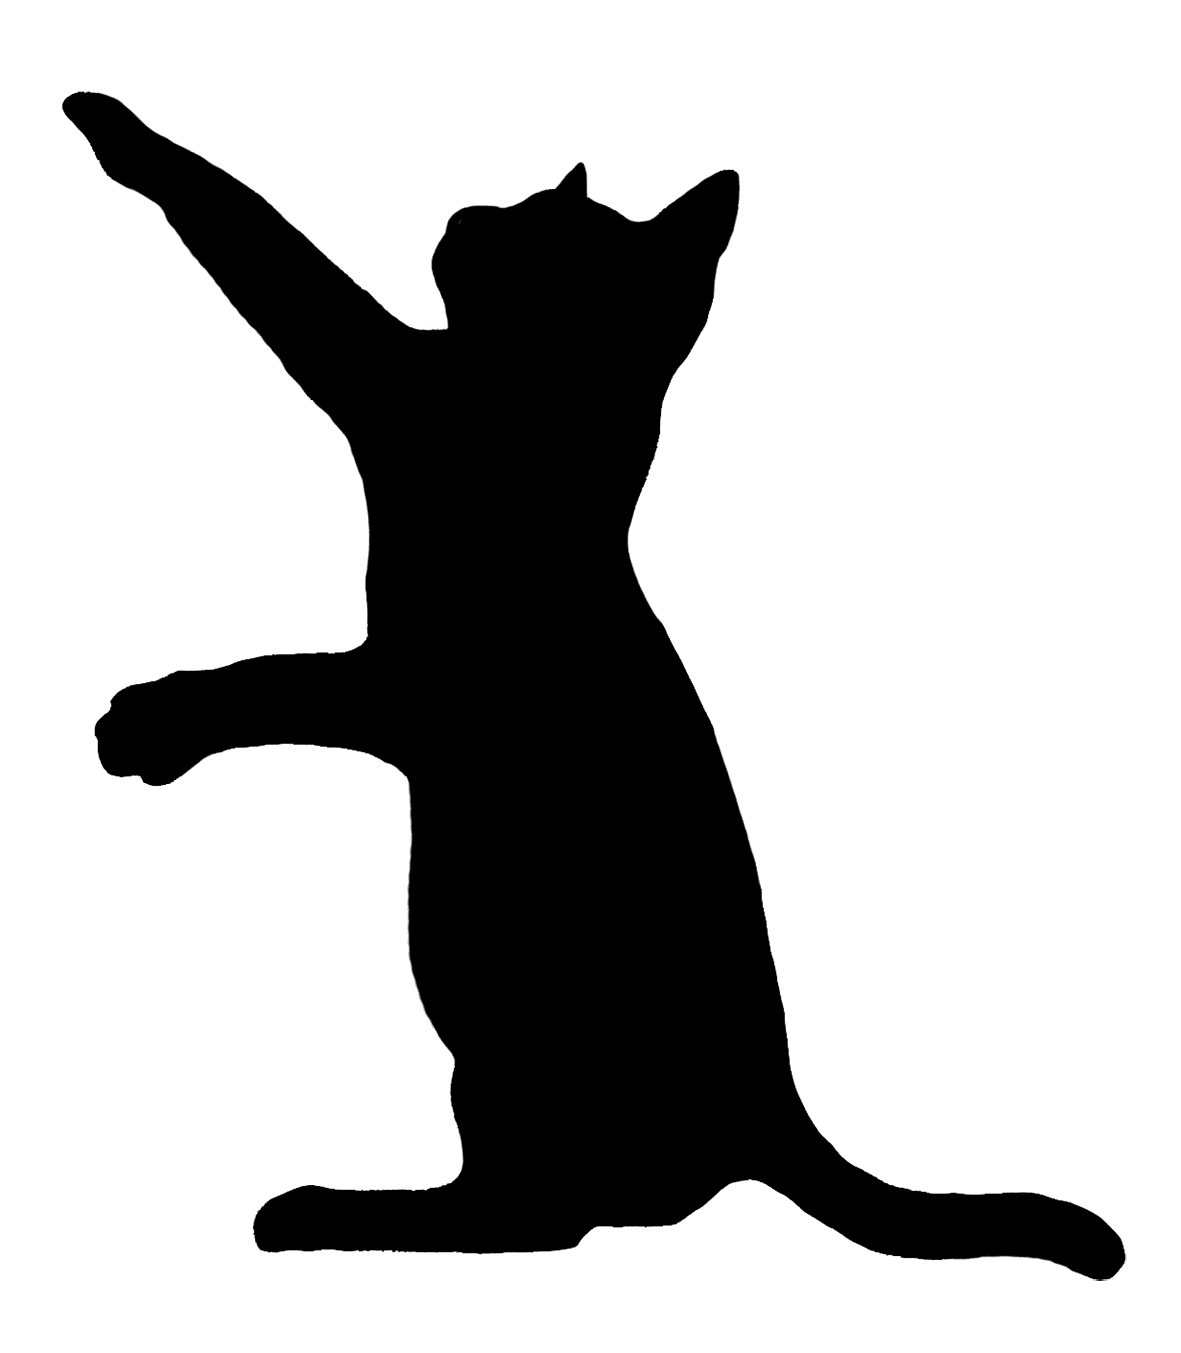 Download Cat play and toys Kitten Silhouette Clip art - black cat ...